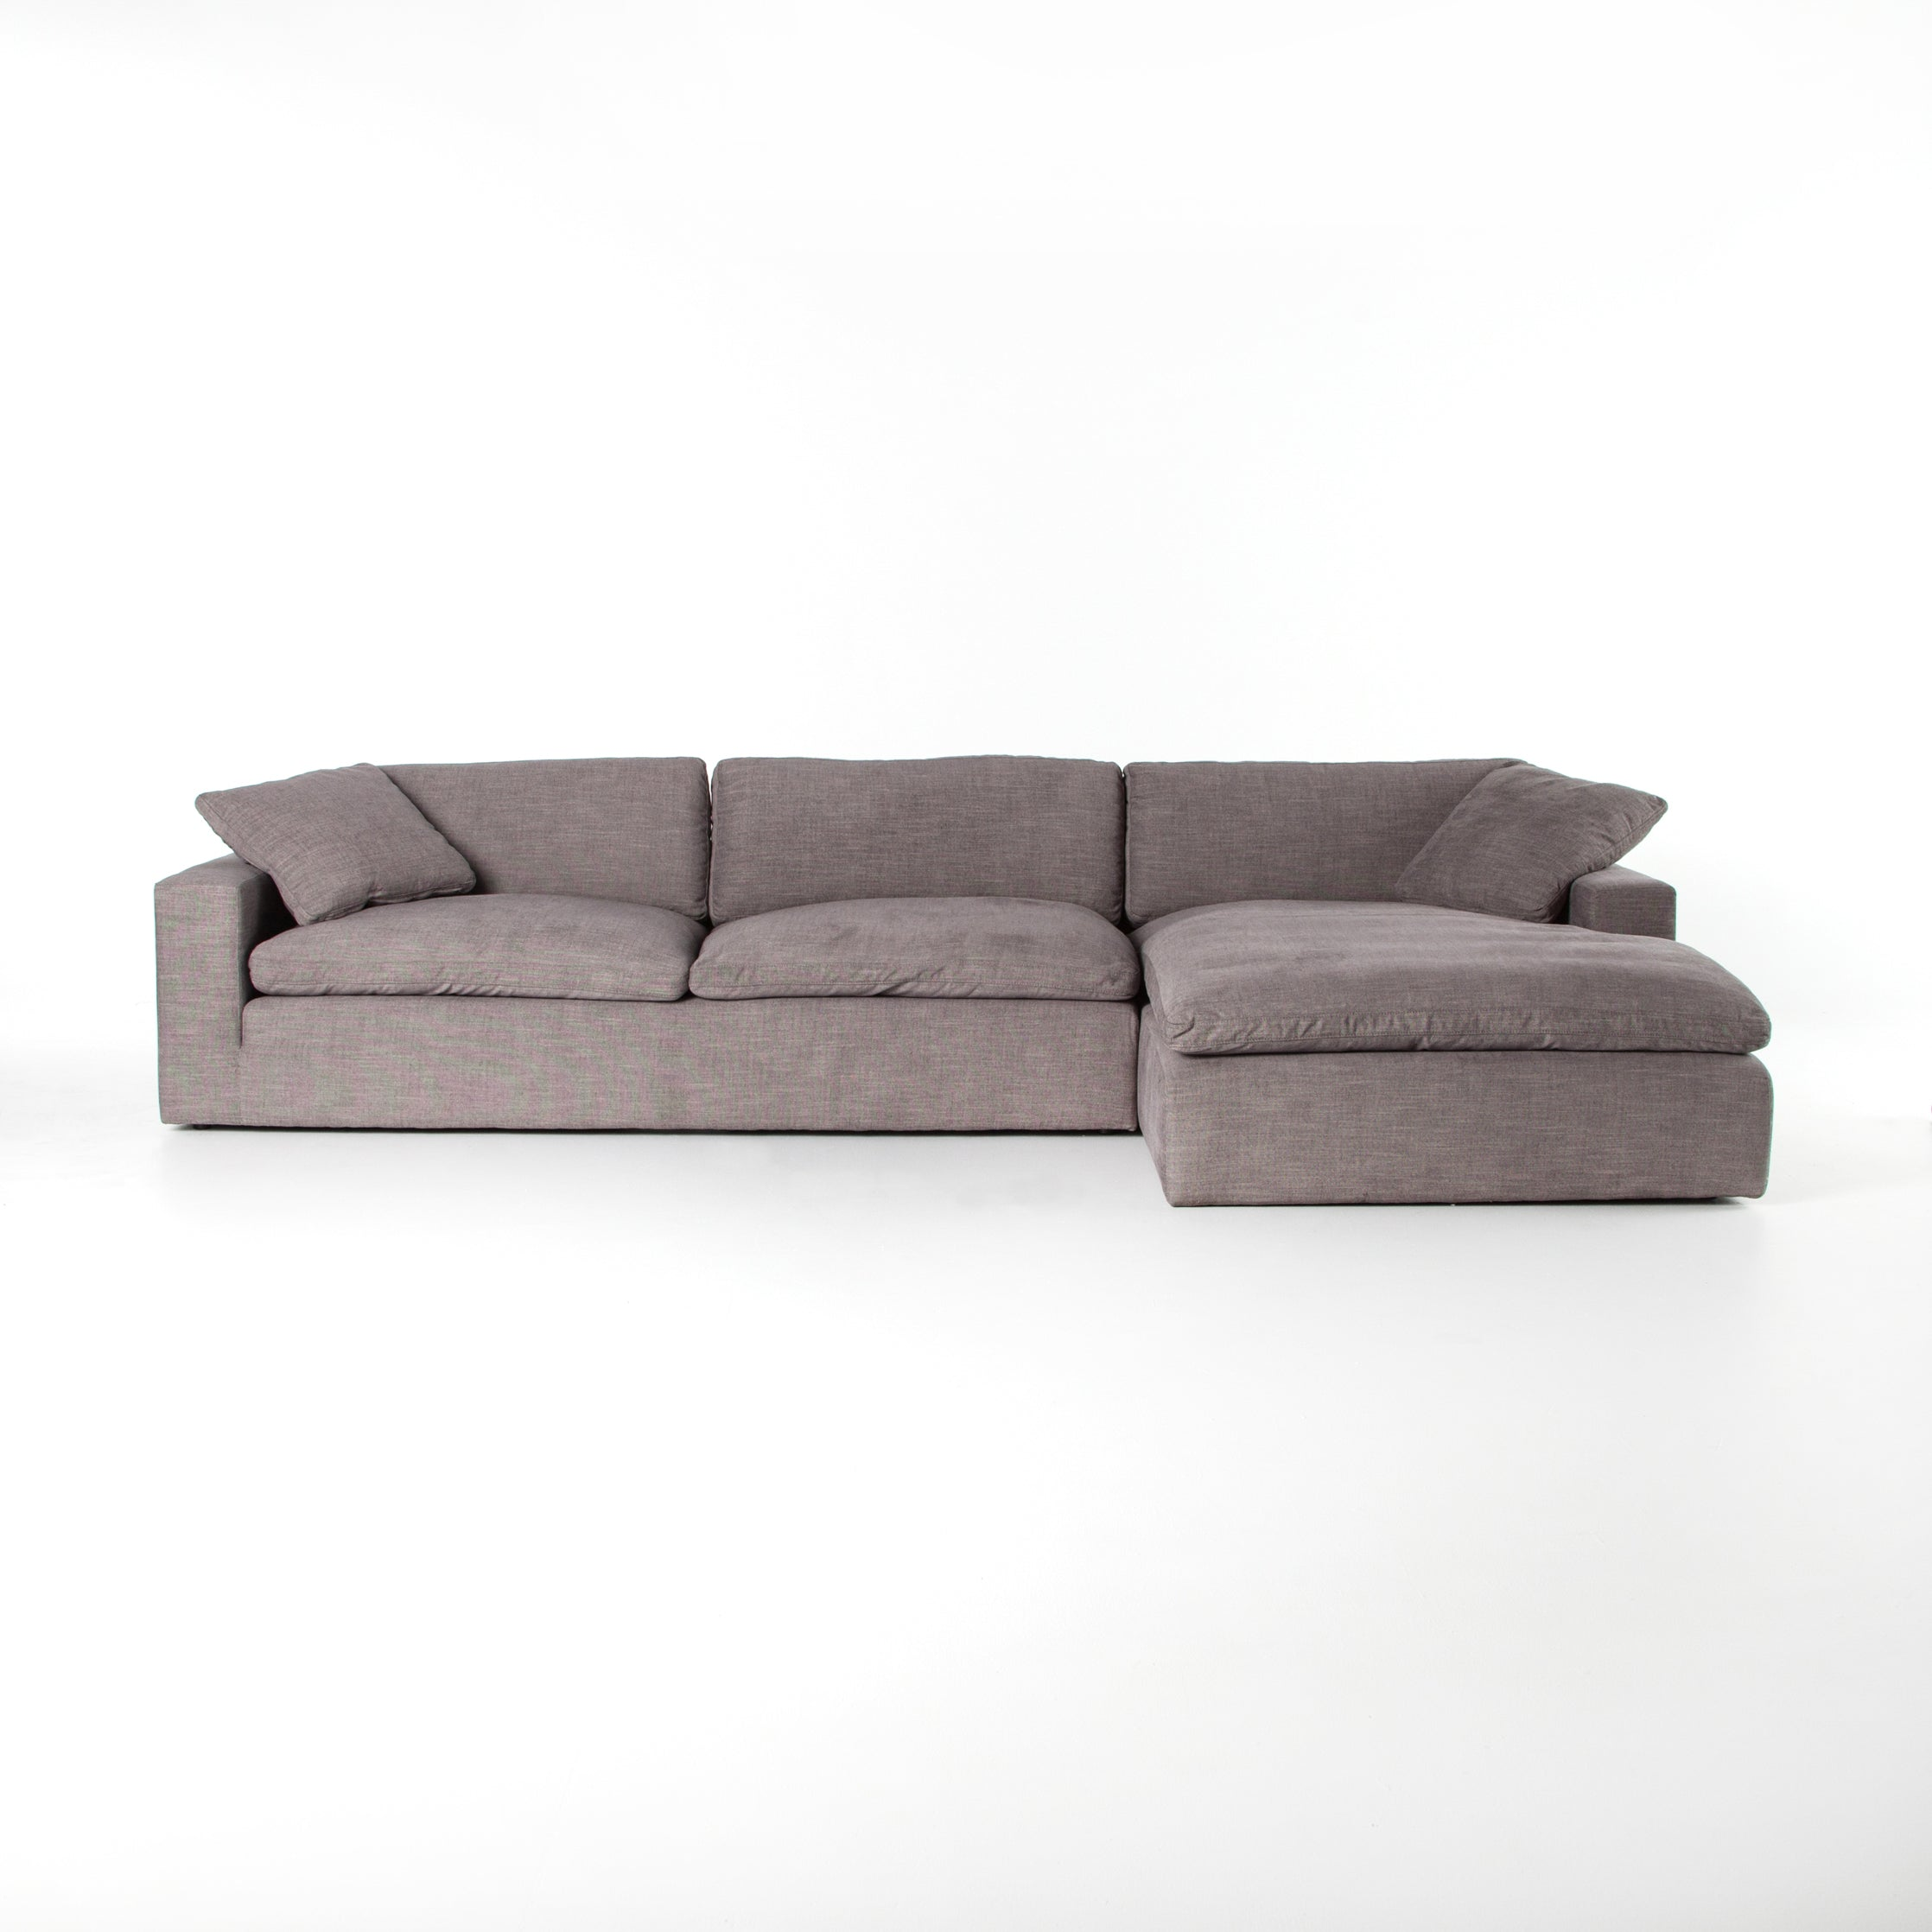 Plume 2 Piece 106 Sectional in Harbor Grey